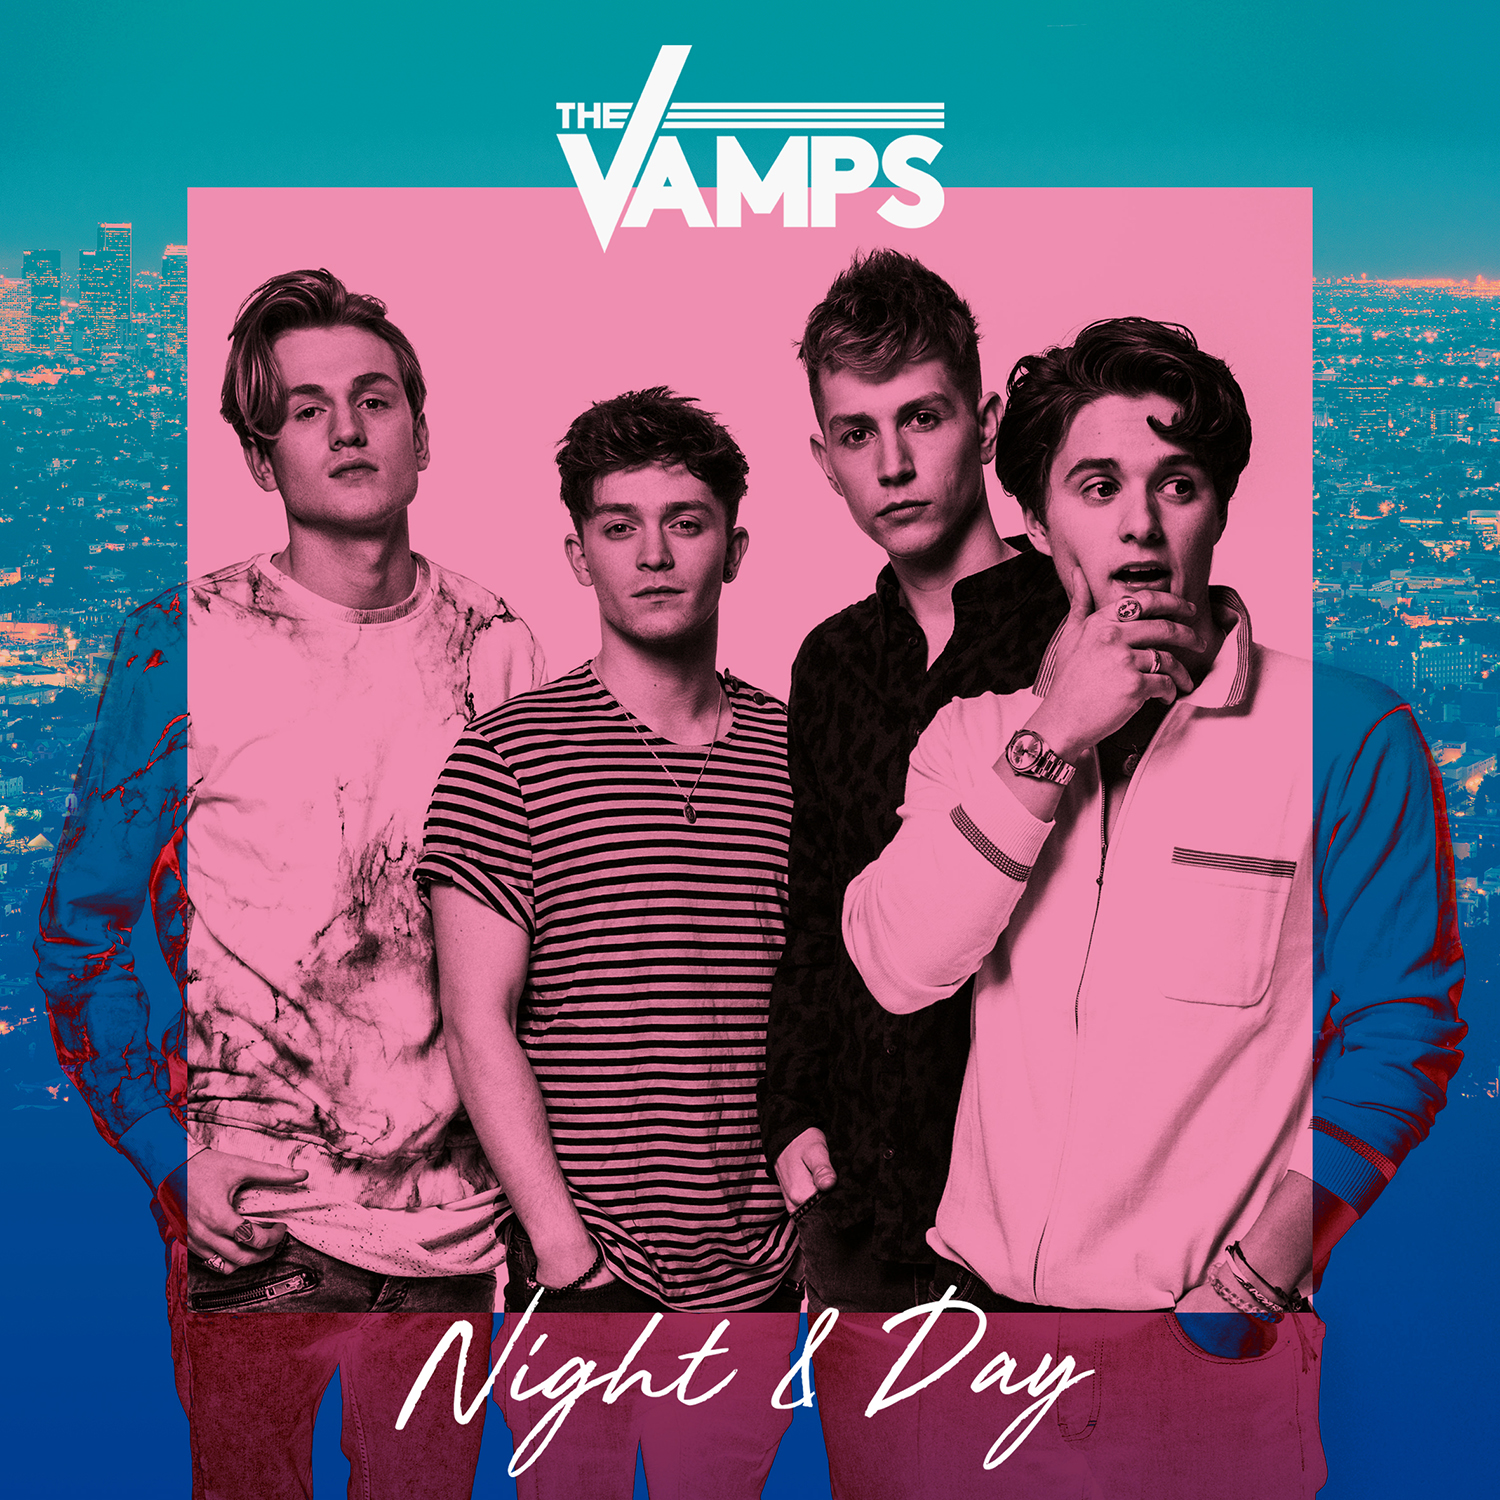 Album cover for The Vamps album ''Night & Day''